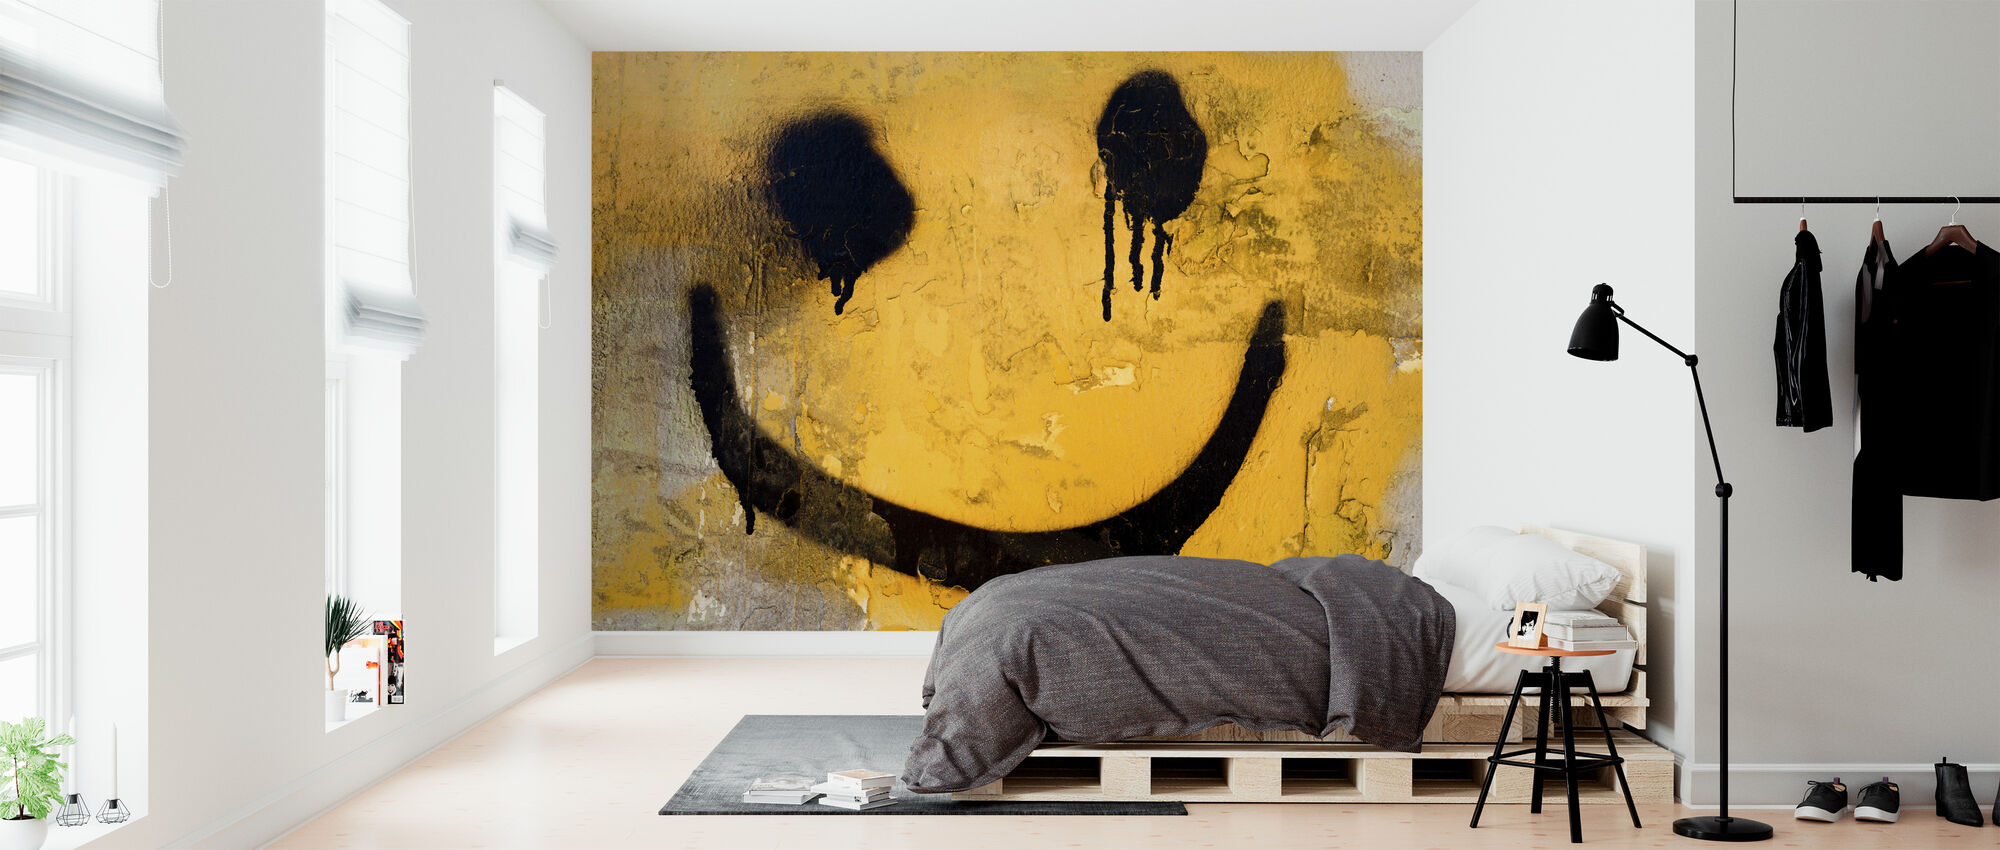 Smiley Face - Wallpaper - Bedroom